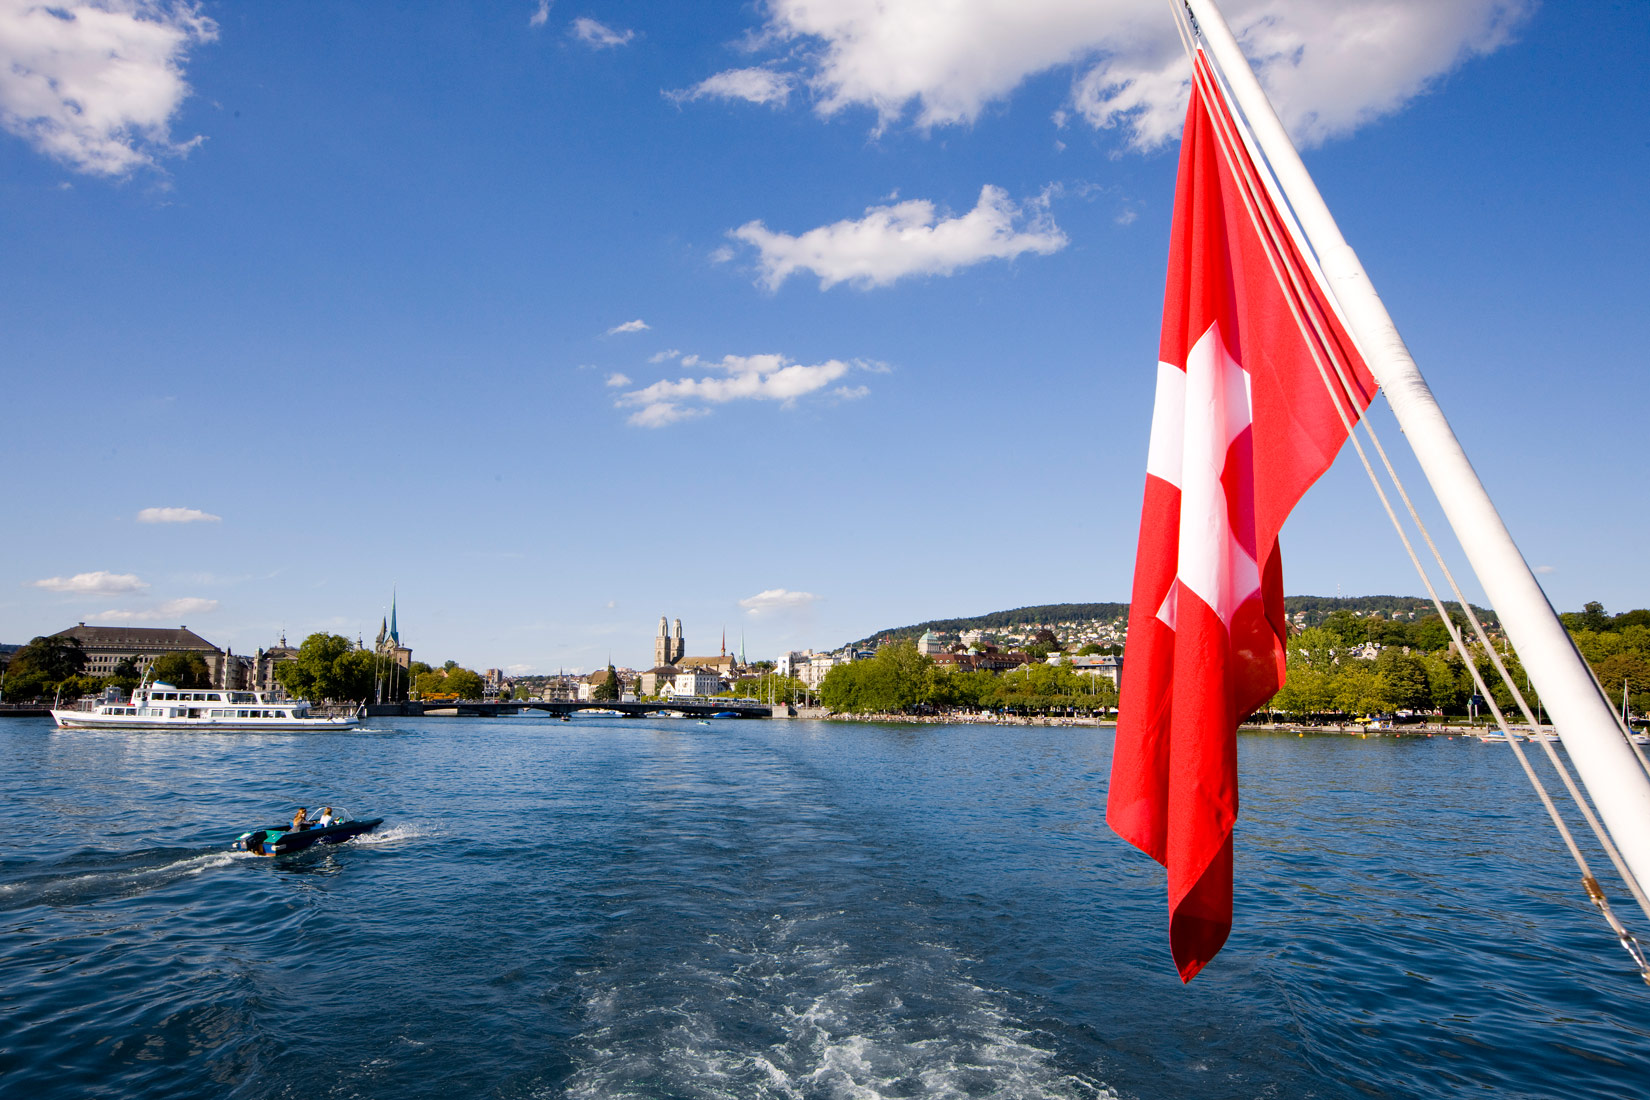 The Beauty Of Zurich From The Delightful Kameha Grand 9